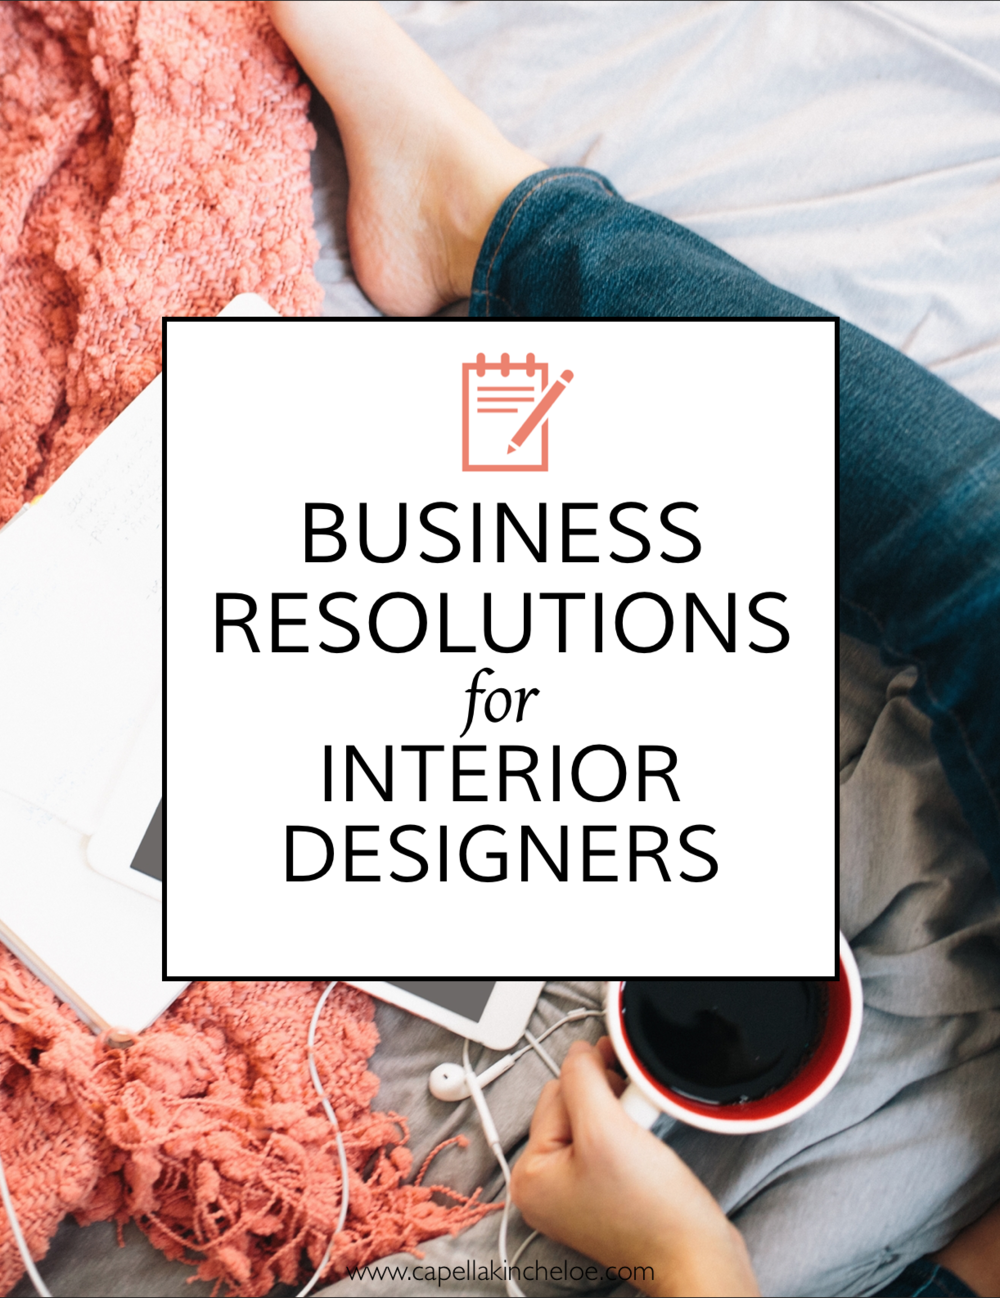 Get your business ready for the new Year! #CKTRADESECRETS #INTERIORDESIGNBUSINESS #BUSINESSRESOLUTIONS